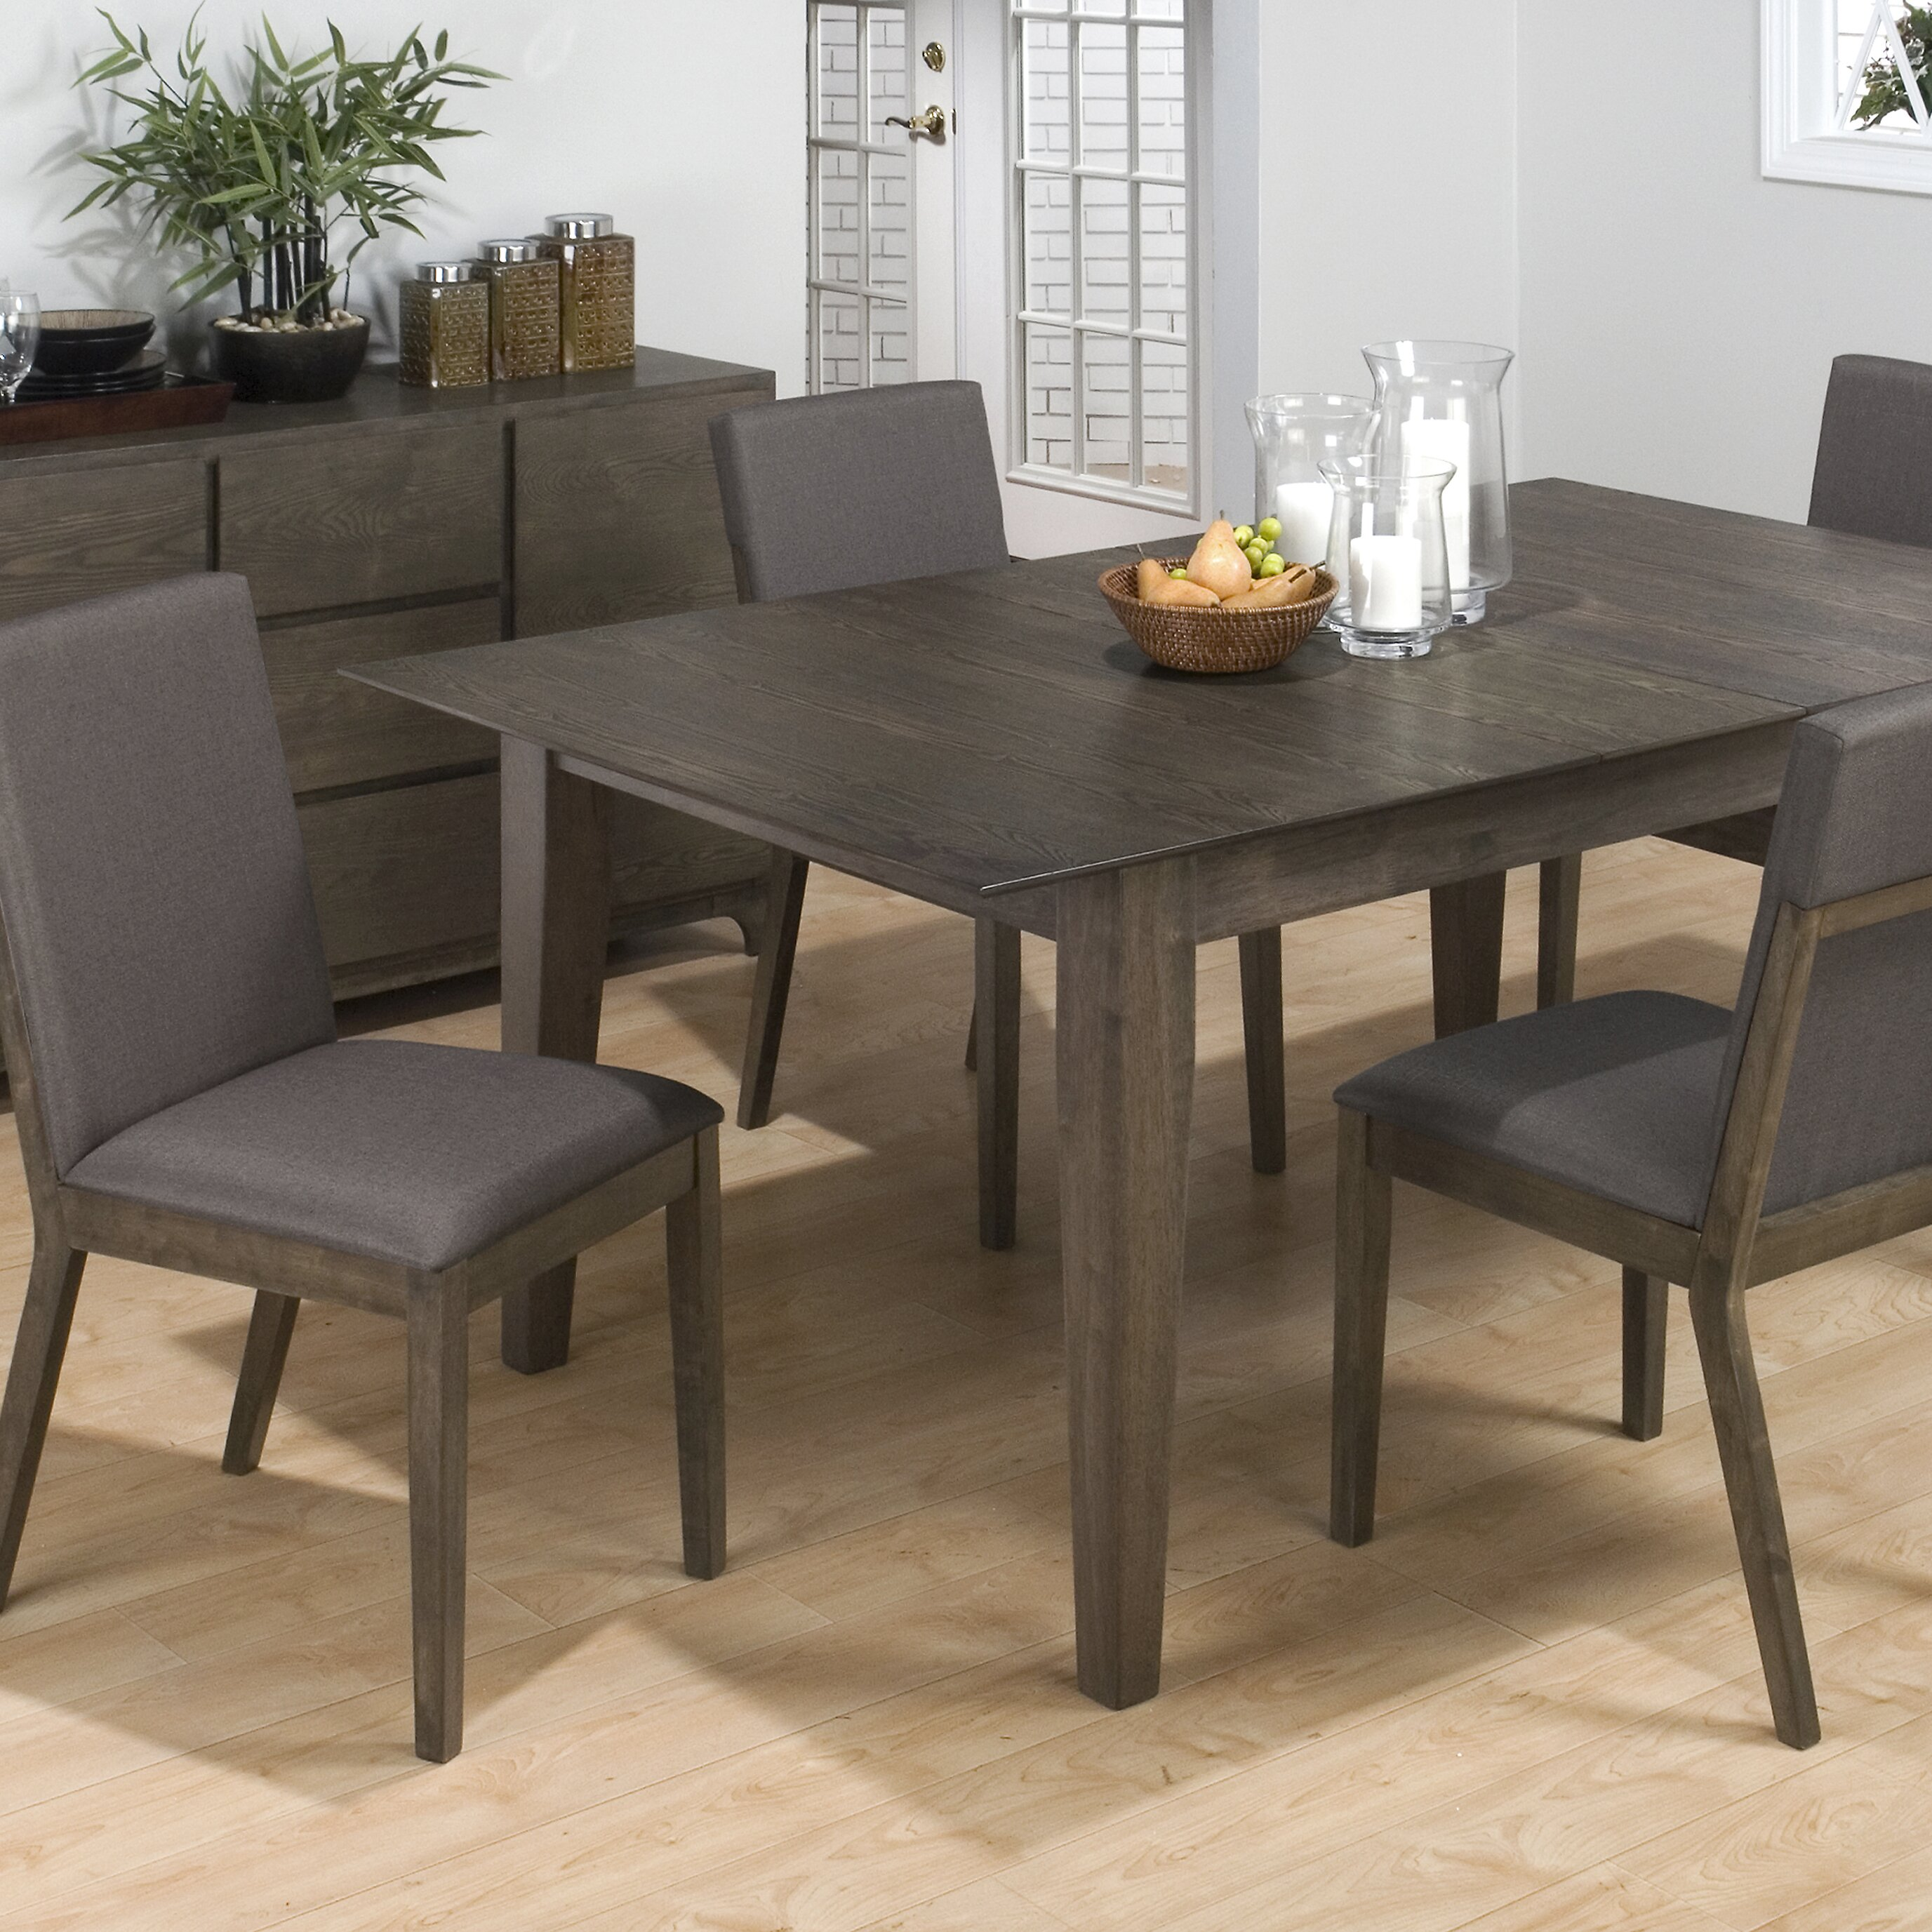 Jofran dining table reviews wayfair for Wayfair dining table